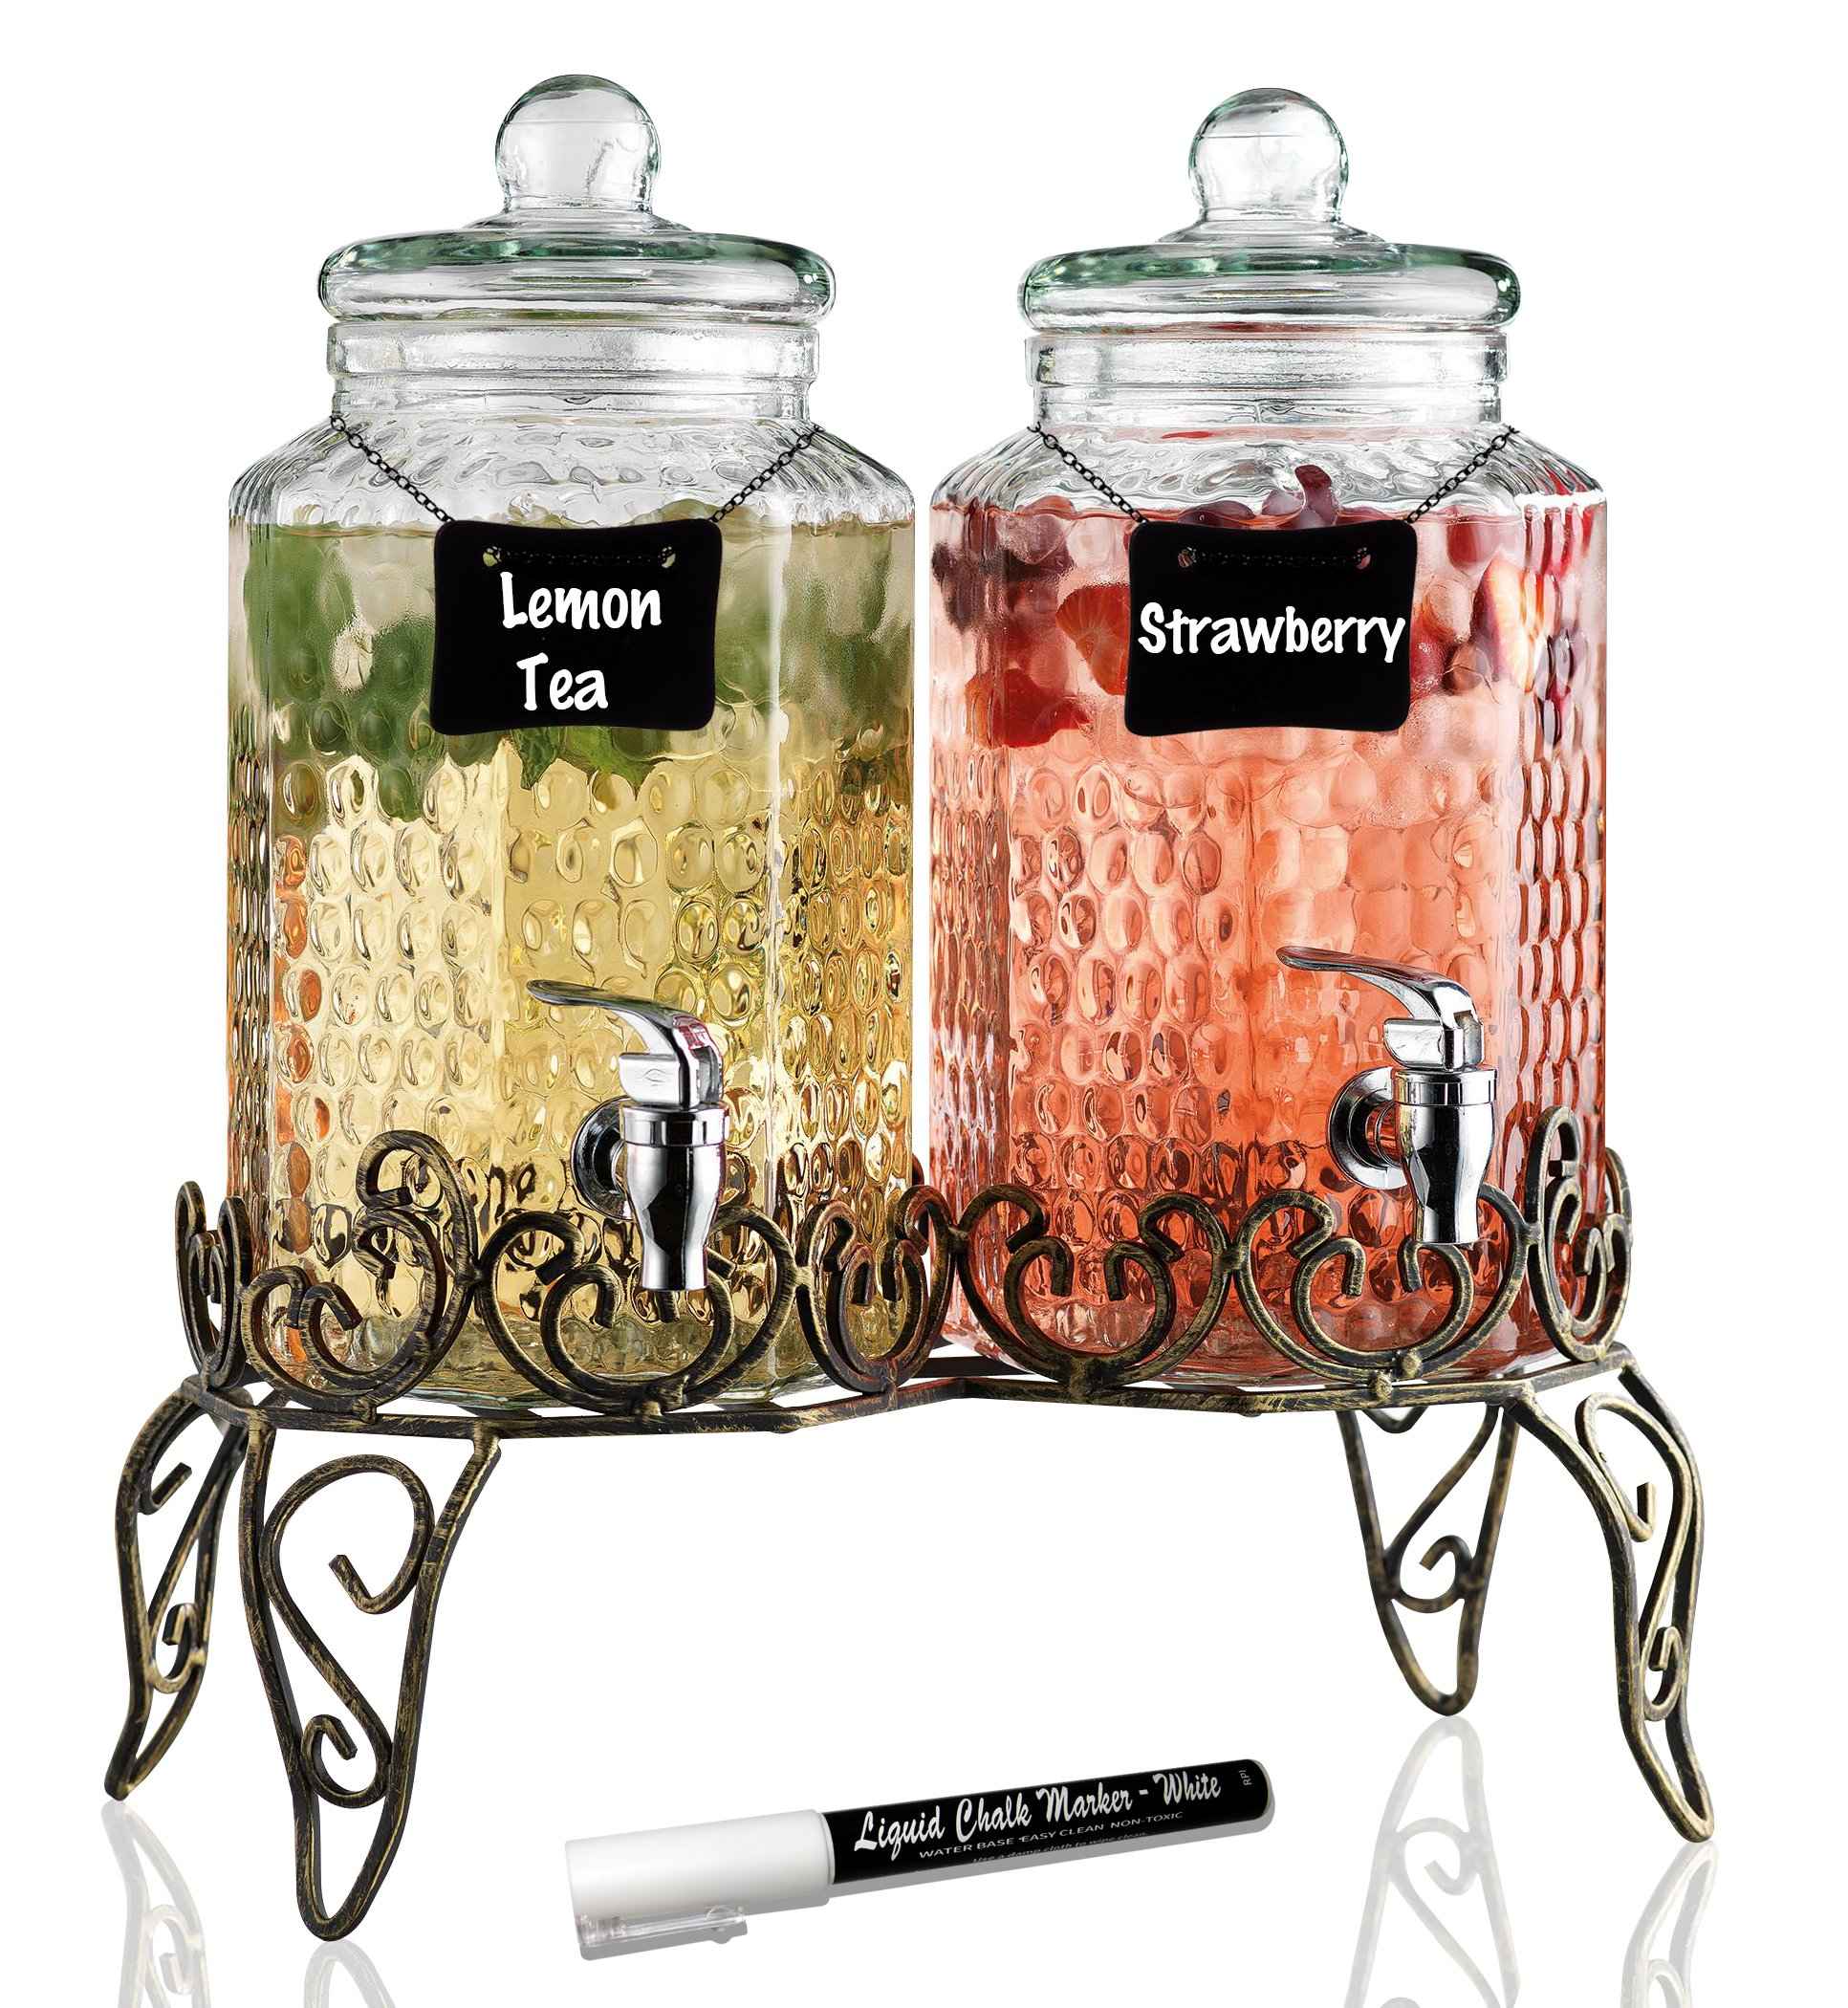 Elegant Hammered Glass Double Beverage Drink Dispenser on Antique Scroll Metal Stand - 1 Gallon Each Jug - 2 Erasable Mini Chalkboard Signs, White Liquid Chalk Marker - Home Bar & Party Centerpiece